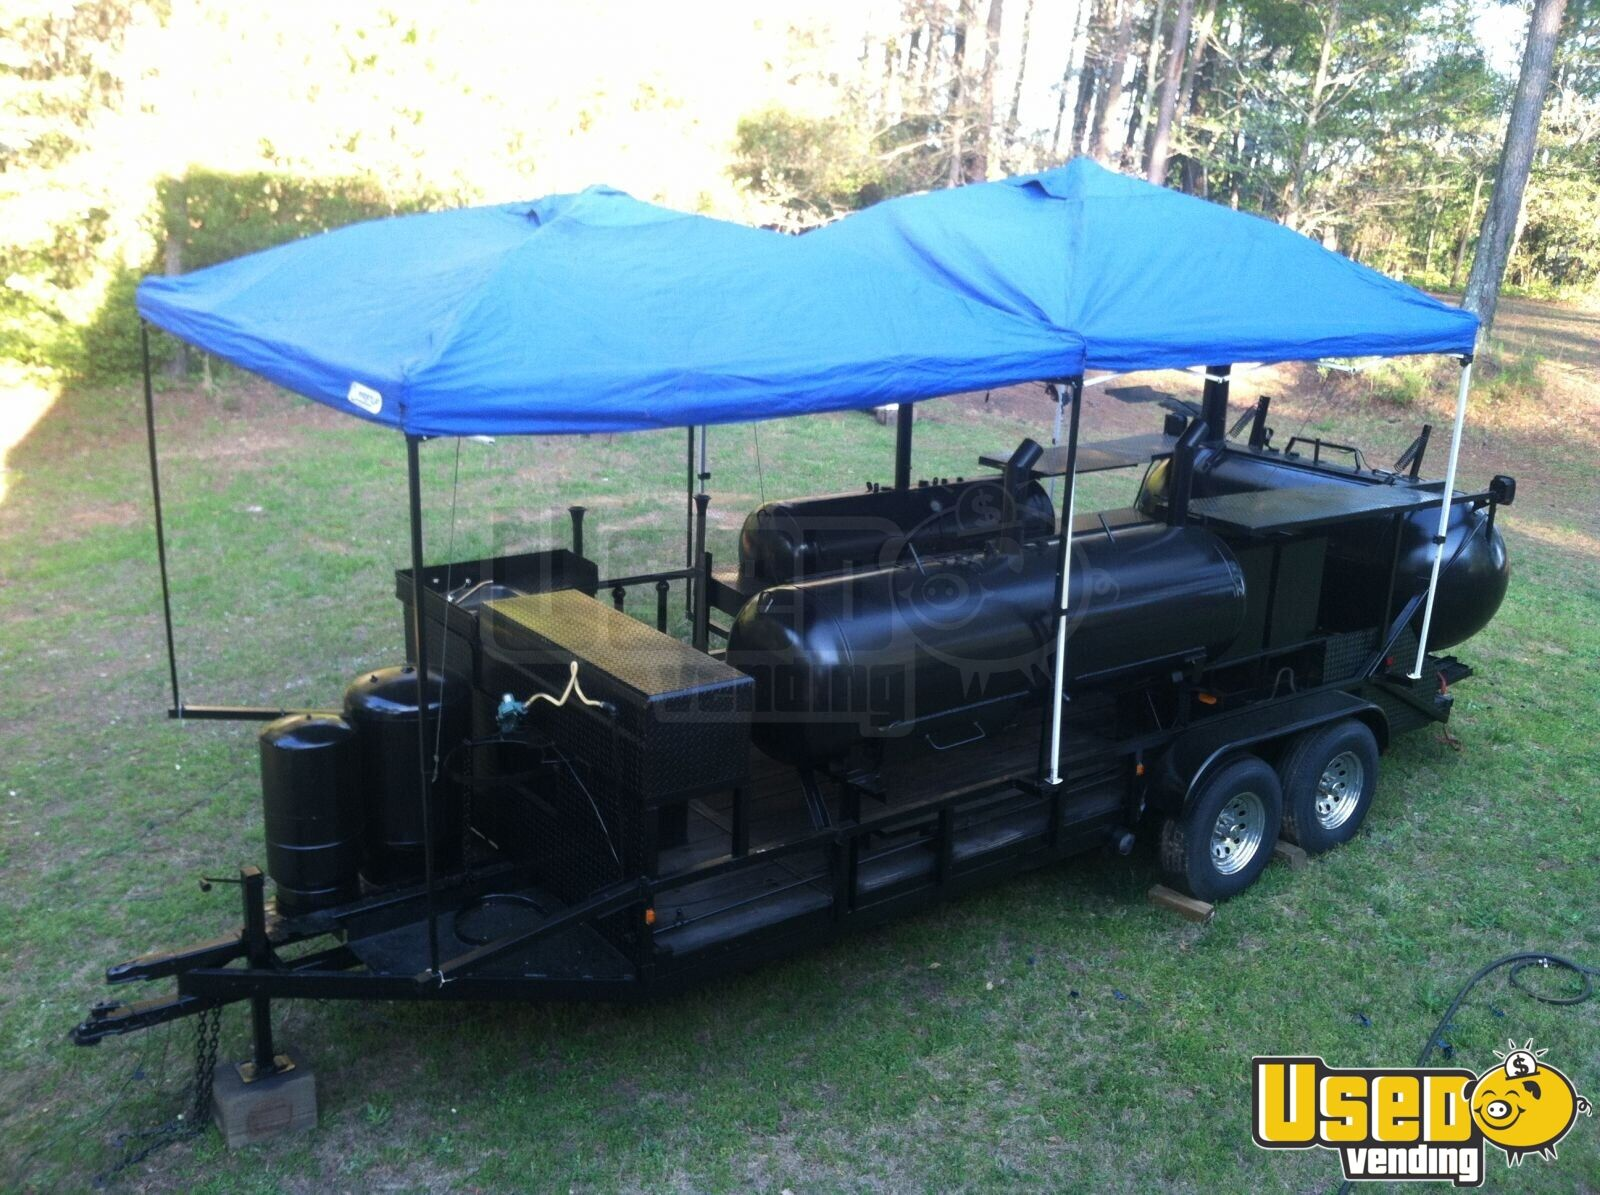 Used Mobile Office Trailers For Sale >> Triple BBQ Smoker Grill | Concession Trailer for Sale in Georgia